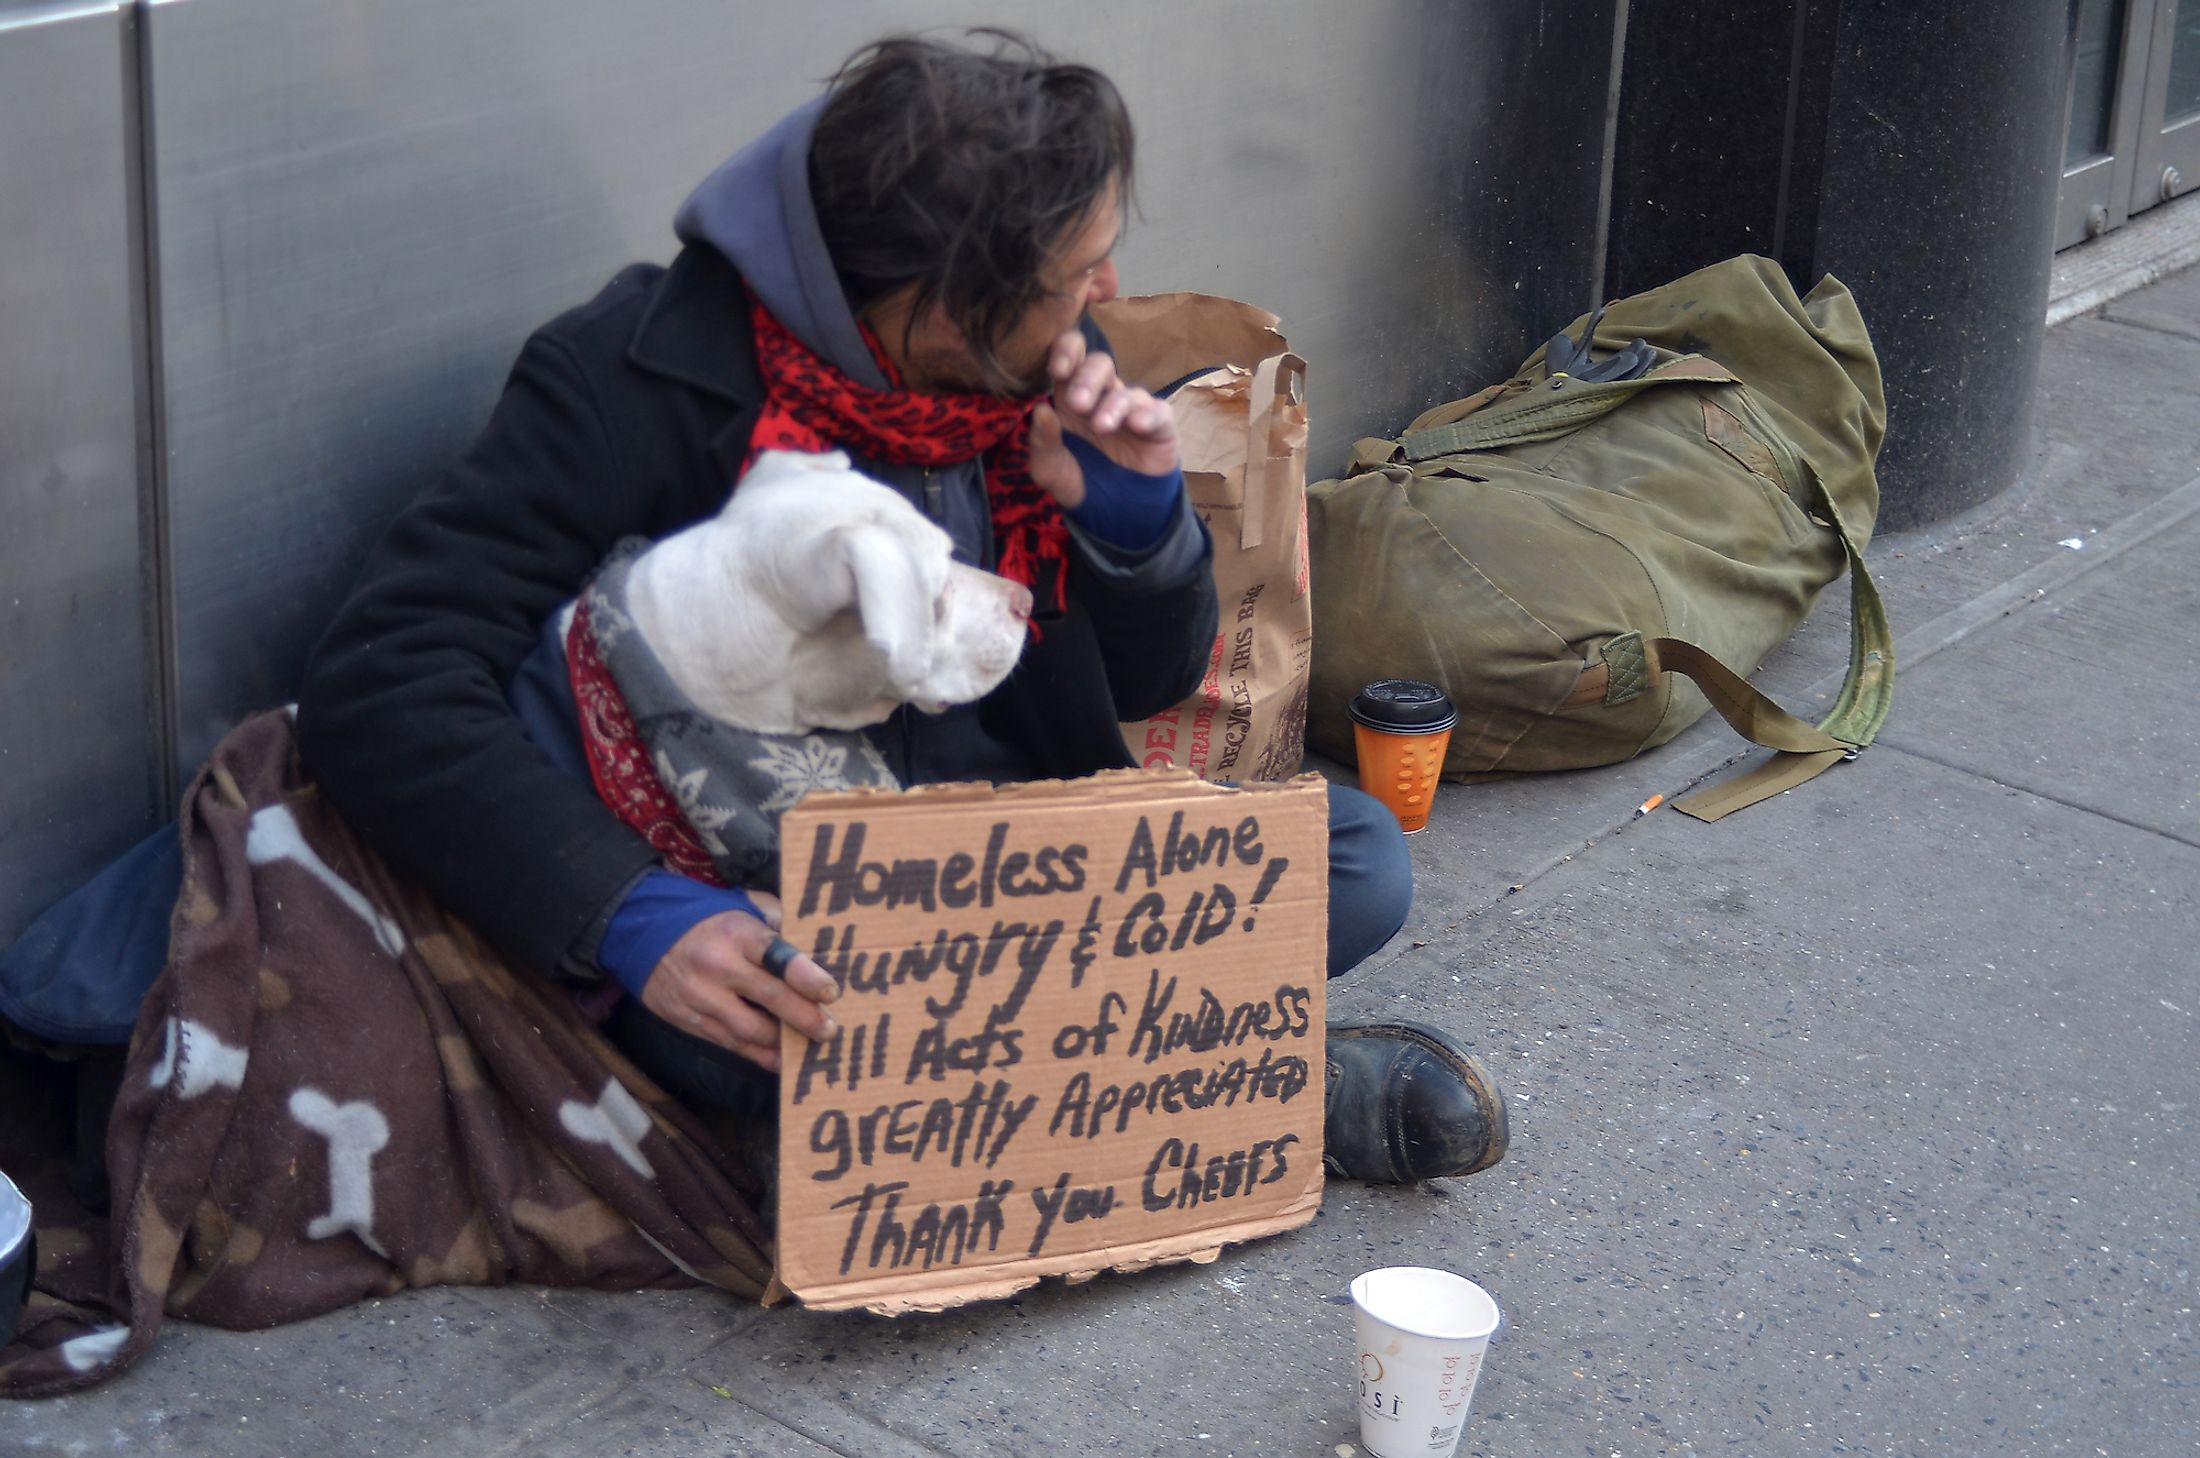 A homeless man sitting on the street with a dog and asking for help February 25, 2012 in New York City.